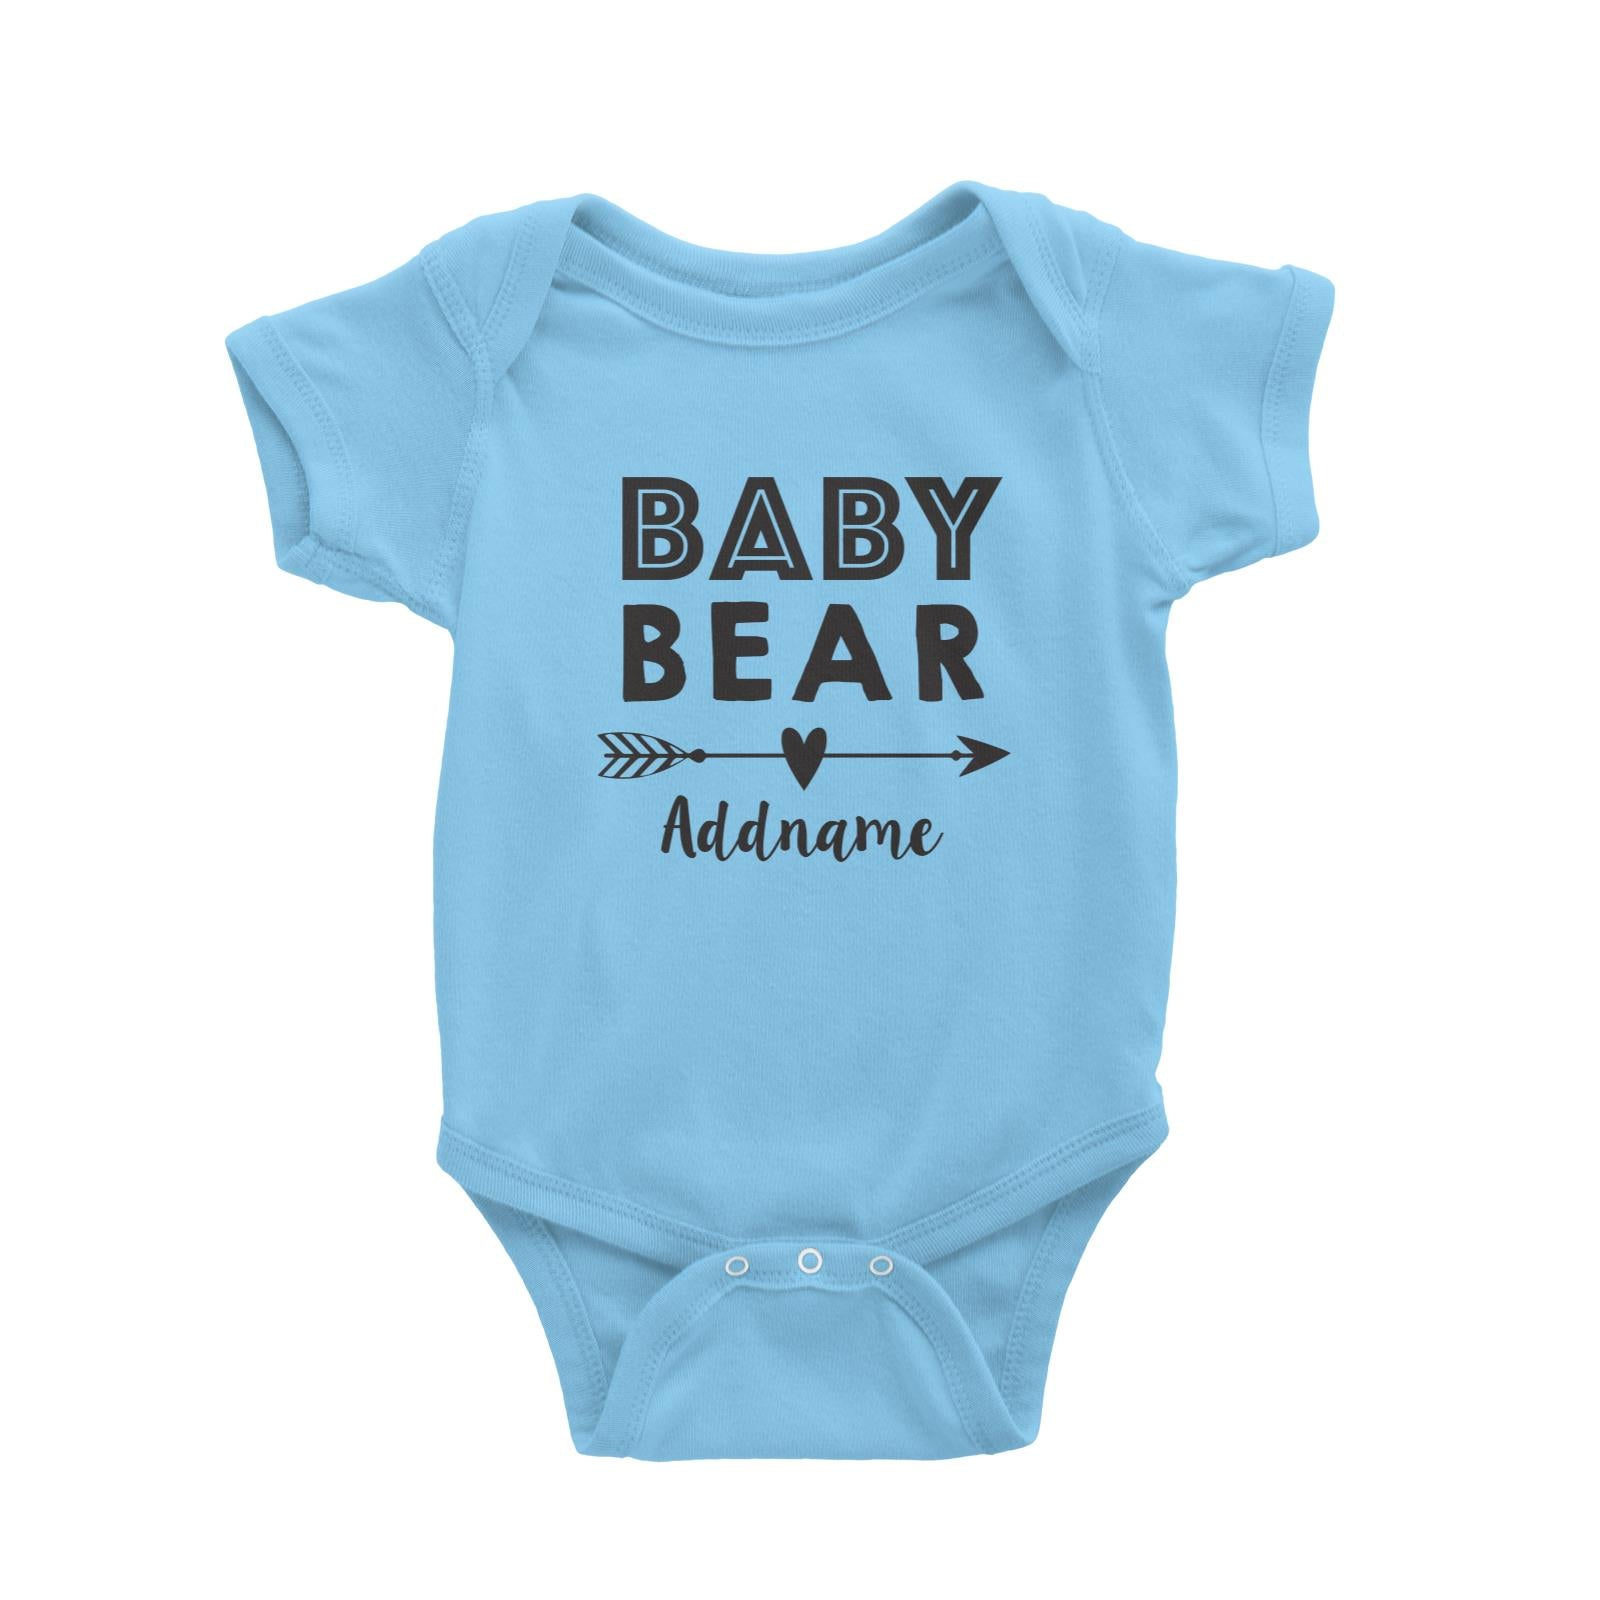 Baby Bear Addname Baby Romper  Matching Family Personalizable Designs